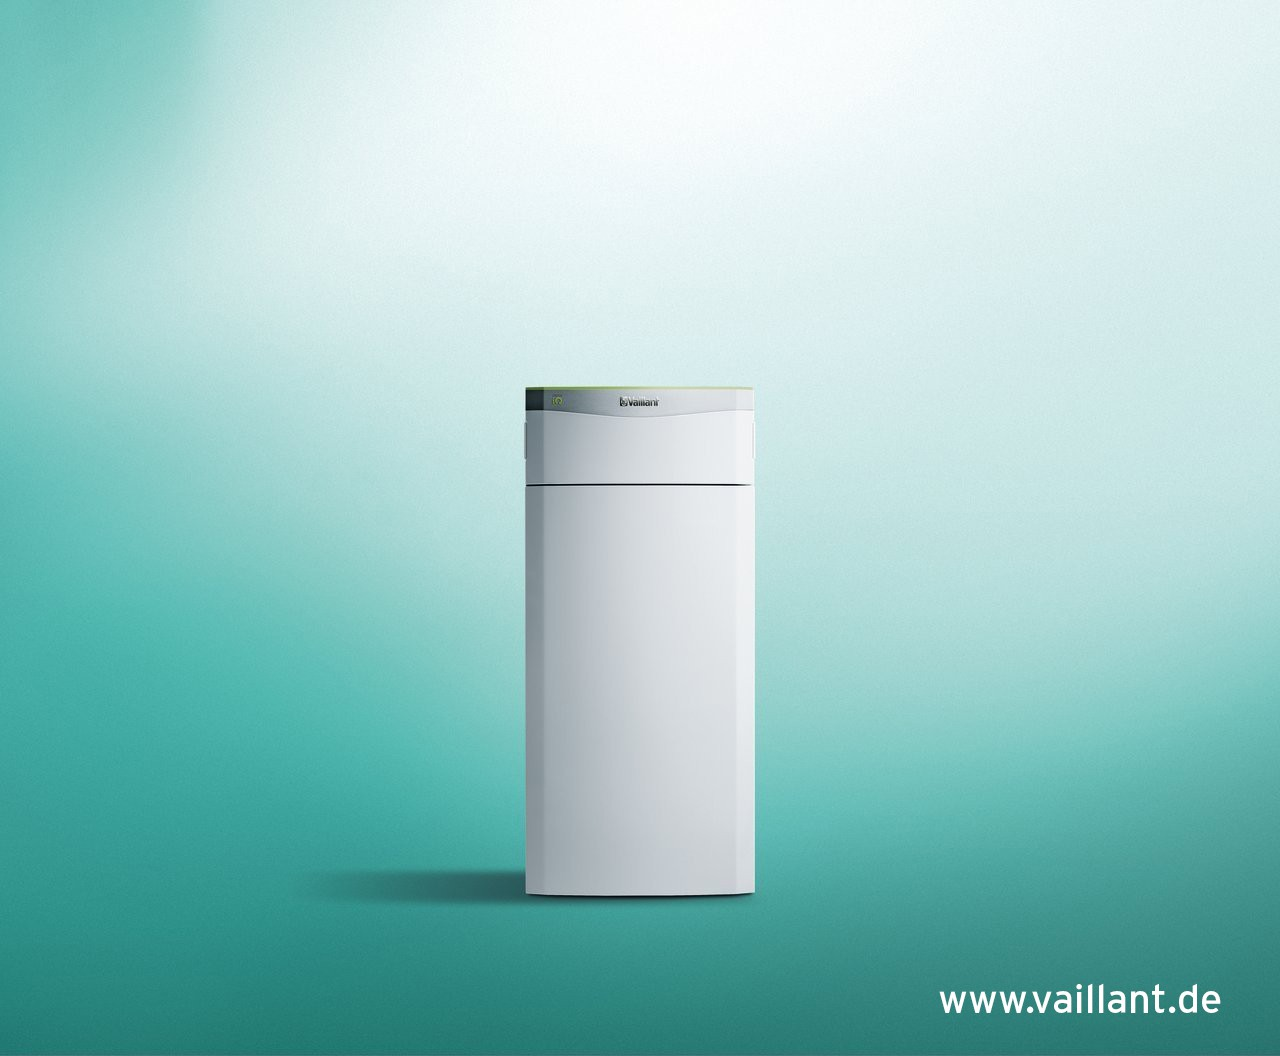 Vaillant VAILLANT flexoTHERM exclusive VWF 57/4